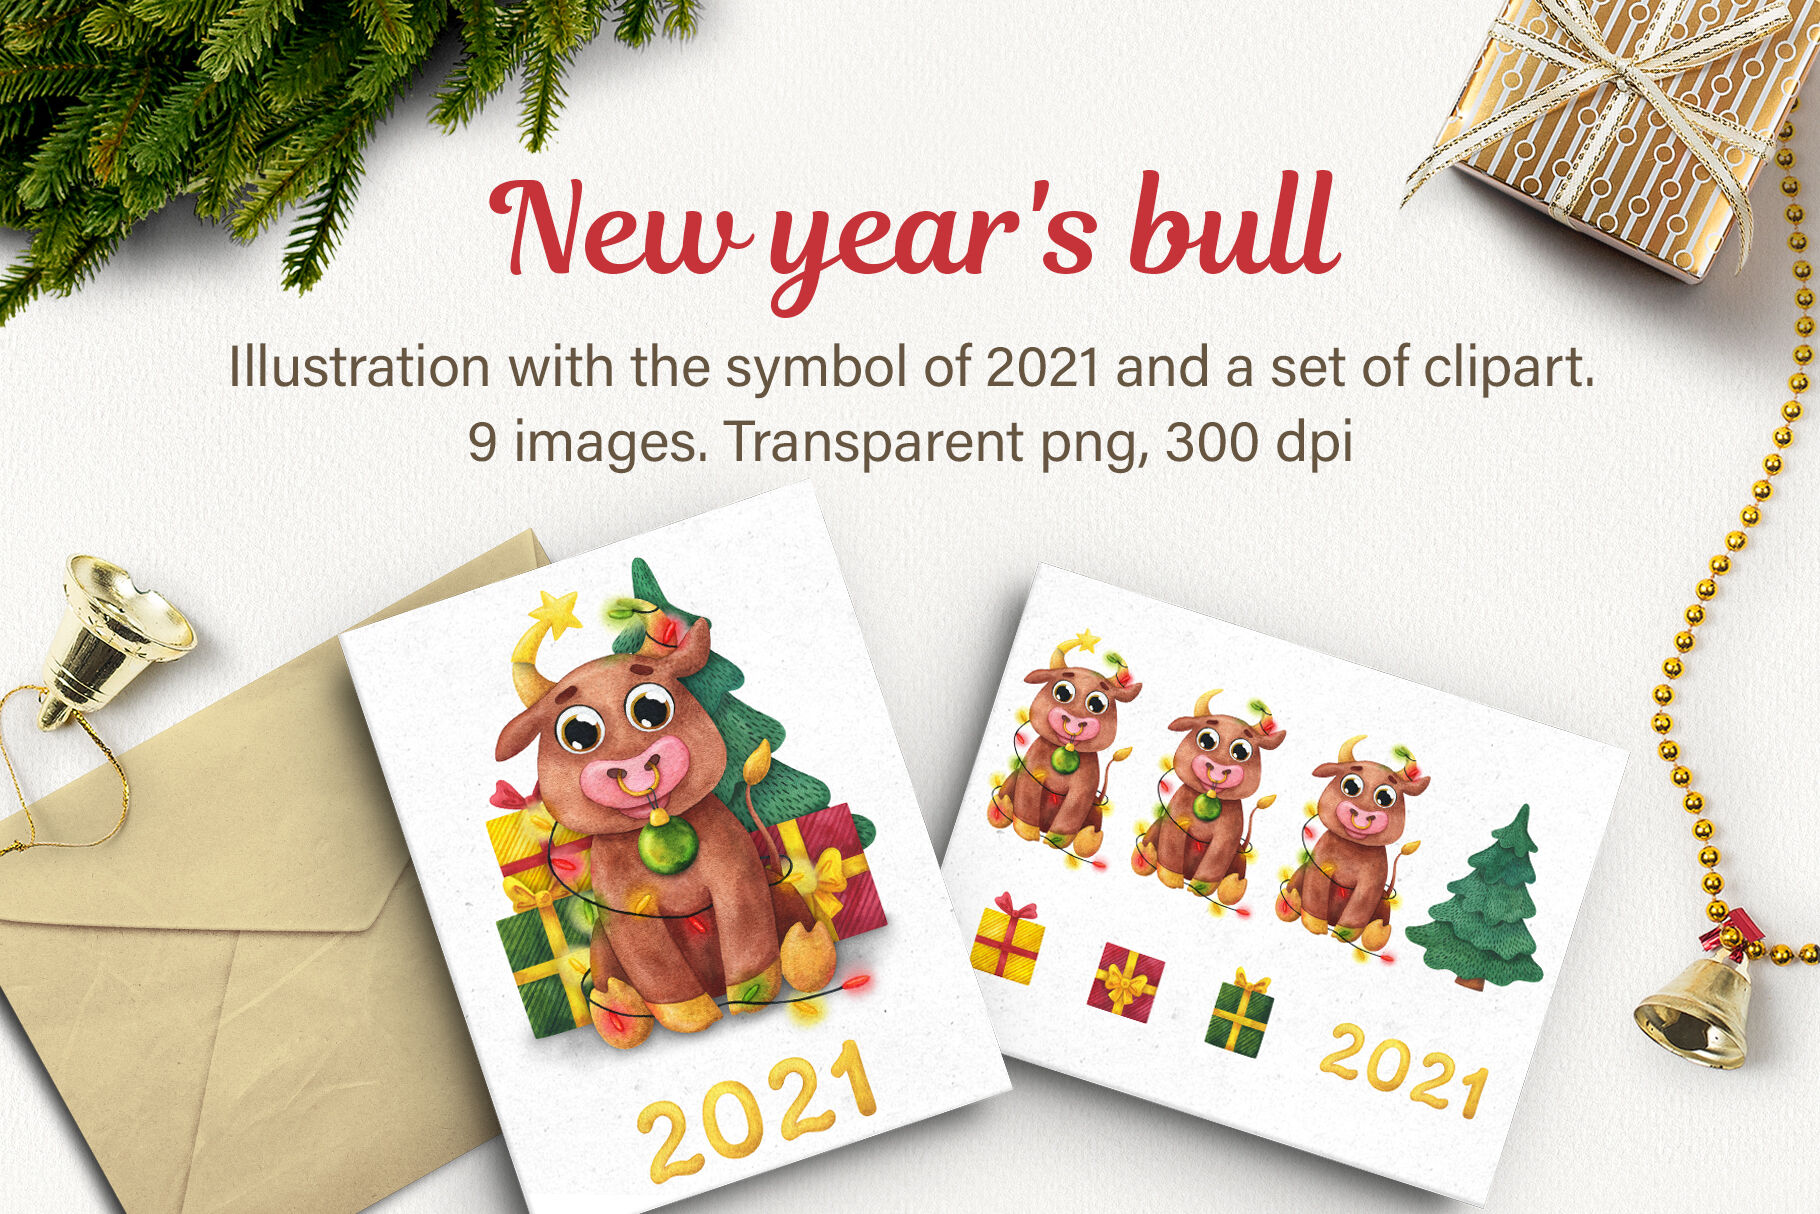 new year s bull watercolor happy new year cute bulls clipart symbol of a year 2021 merry christmas clipart funny bulls cute animal by anin art thehungryjpeg com the hungry jpeg